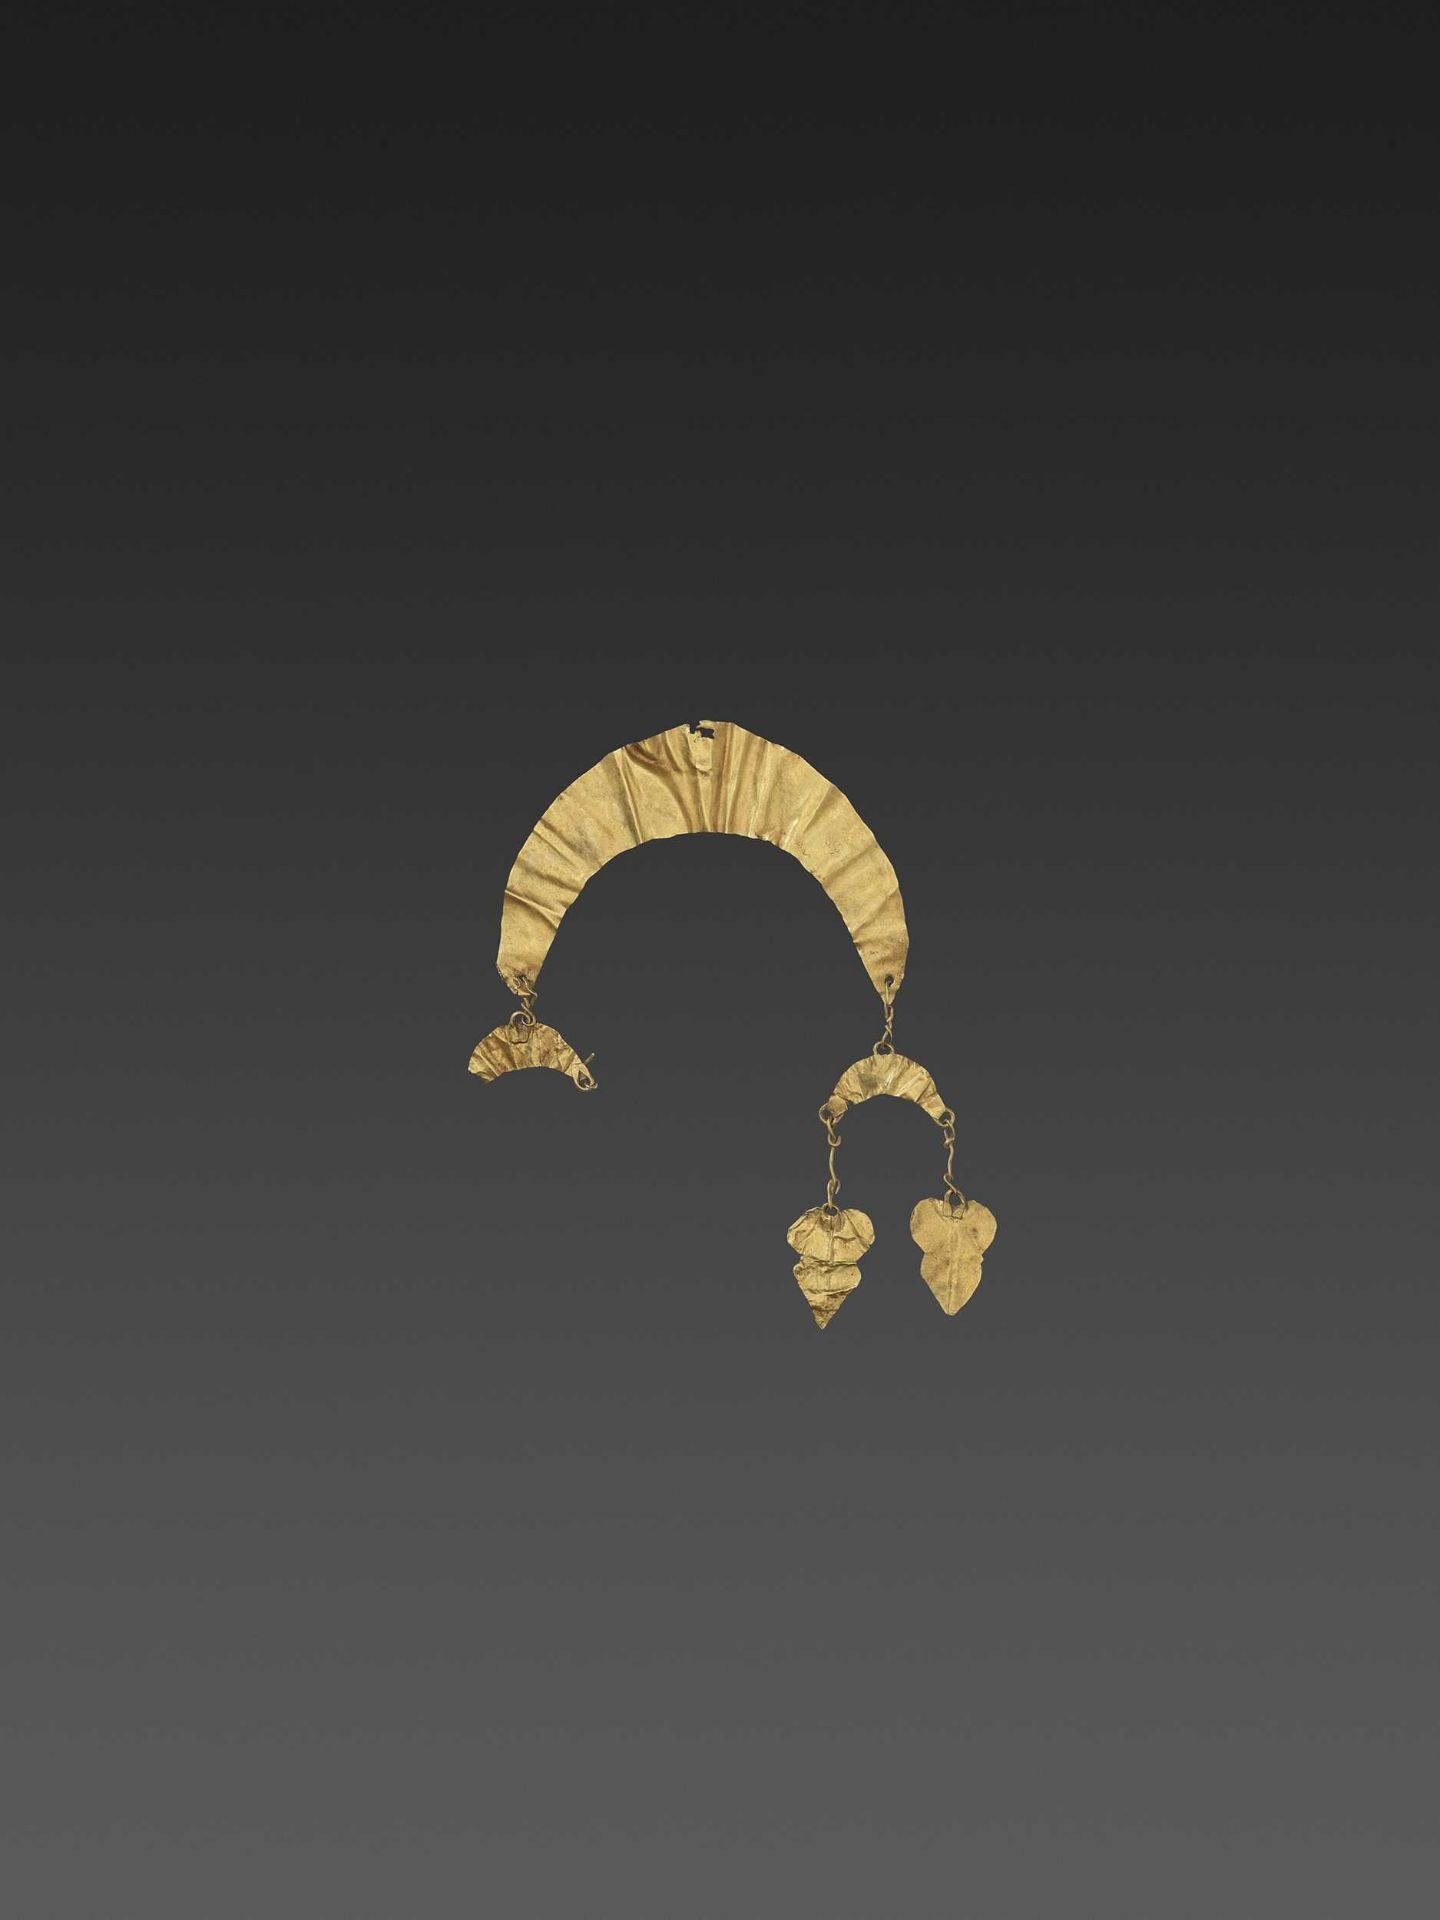 A BACTRIAN GOLD 'CRESCENT MOON' HAIR ORNAMENT